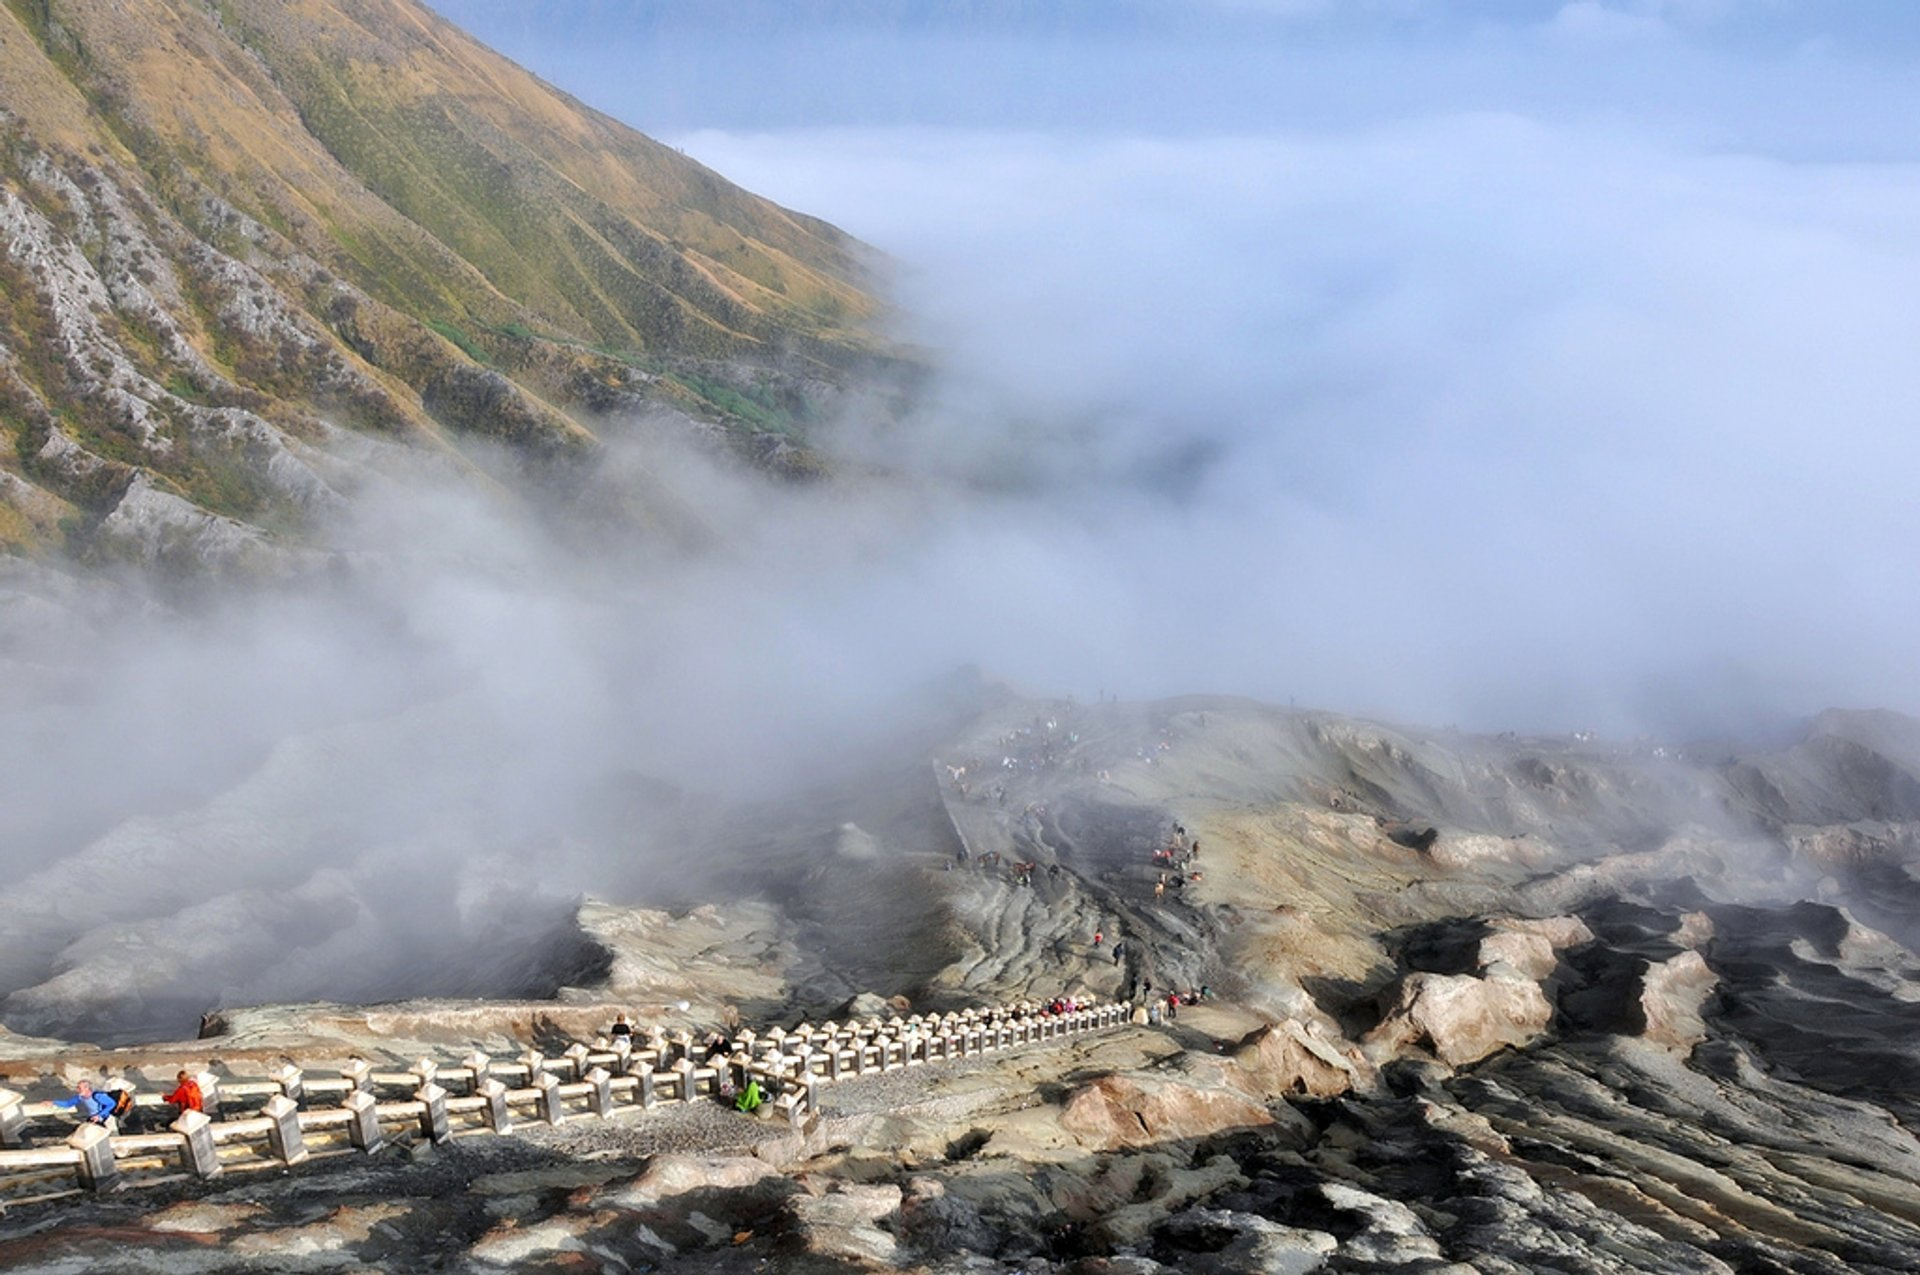 The staircase that climbs to the crater's edge of Mount Bromo 2020